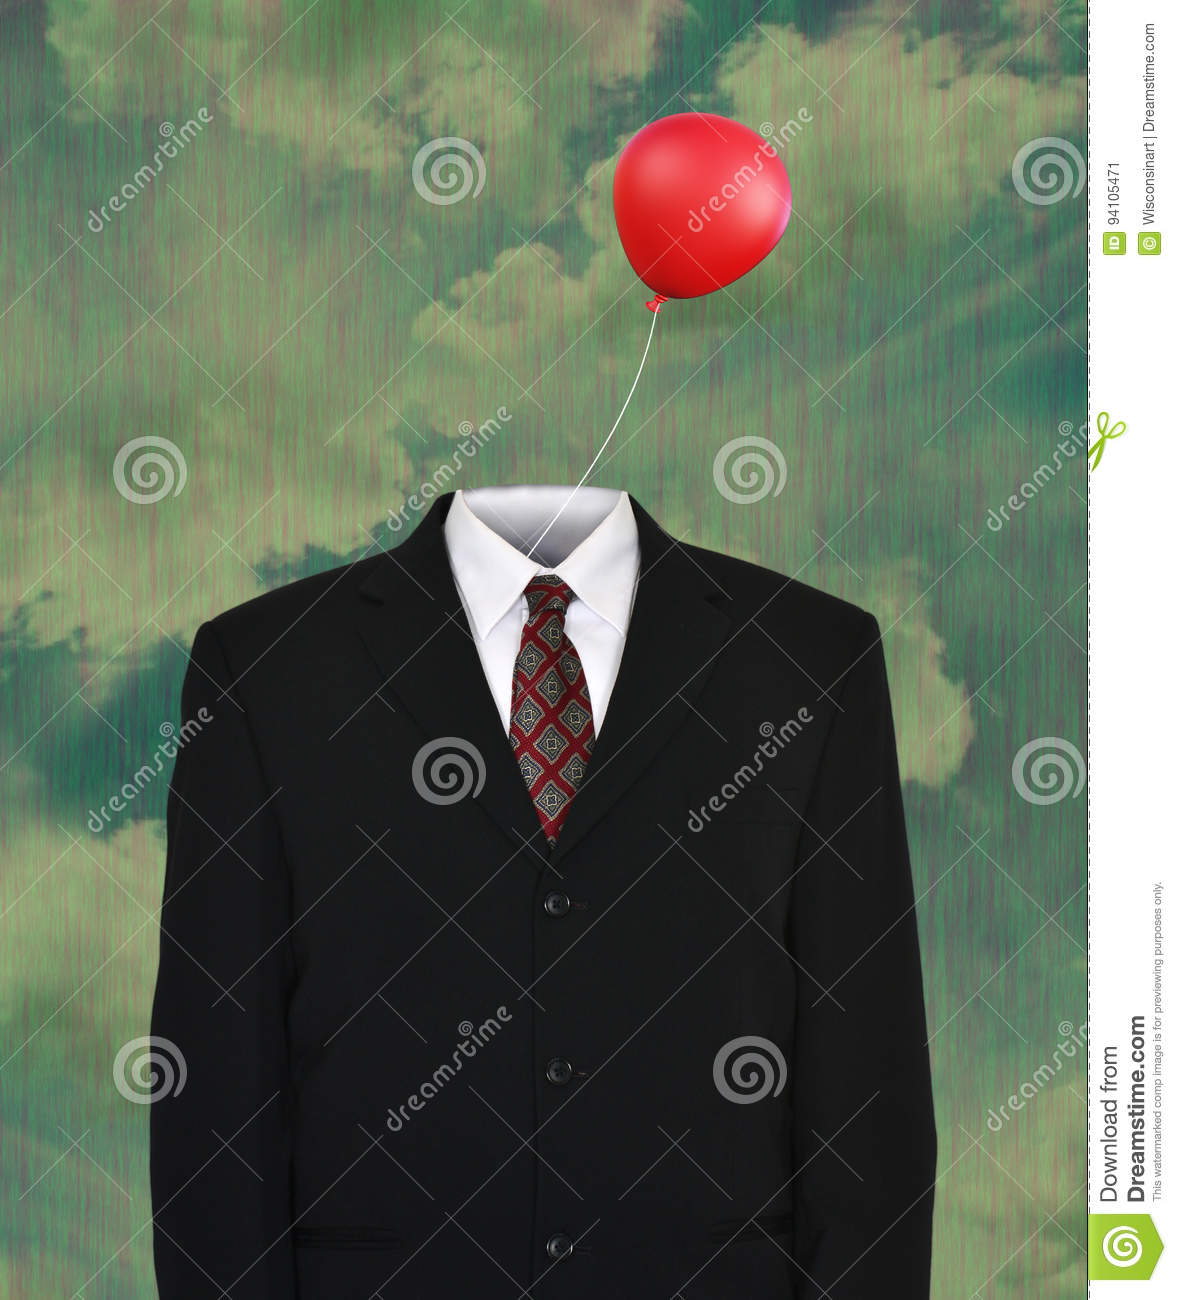 Surreal Empty Business Suit Balloon Stock Image Image Of Surreal